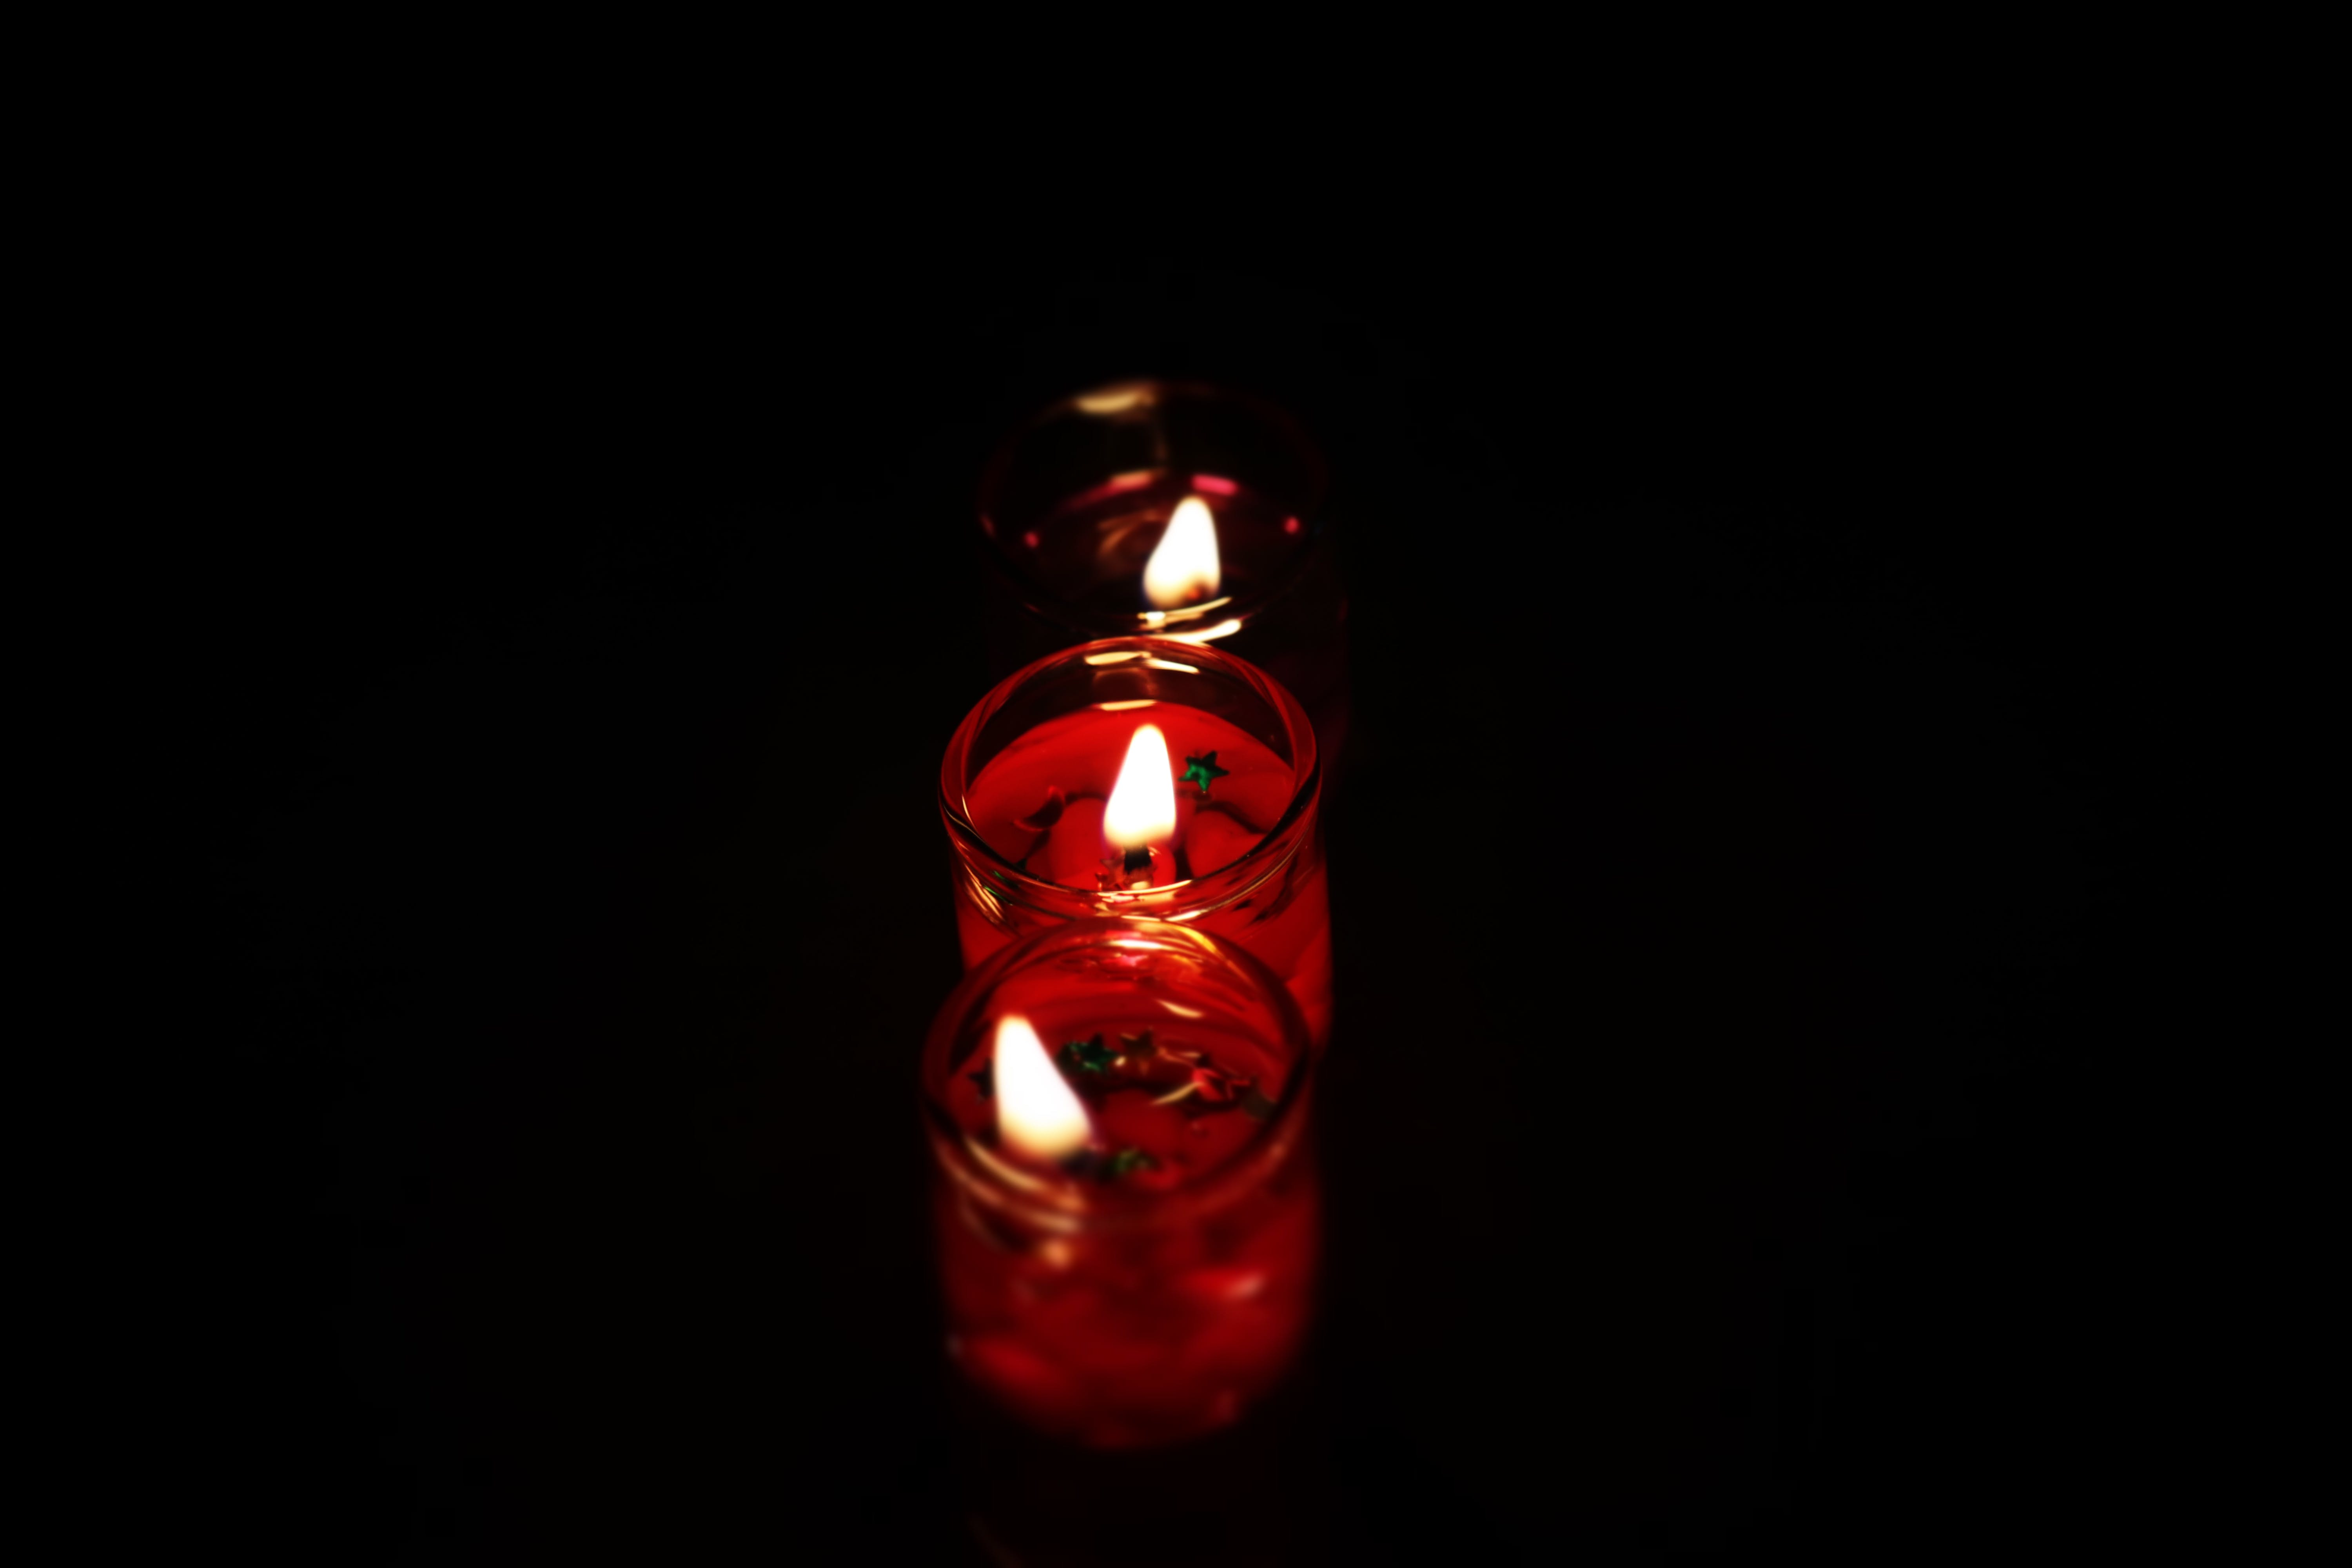 Photography Three Tealight Candles in Dark Place